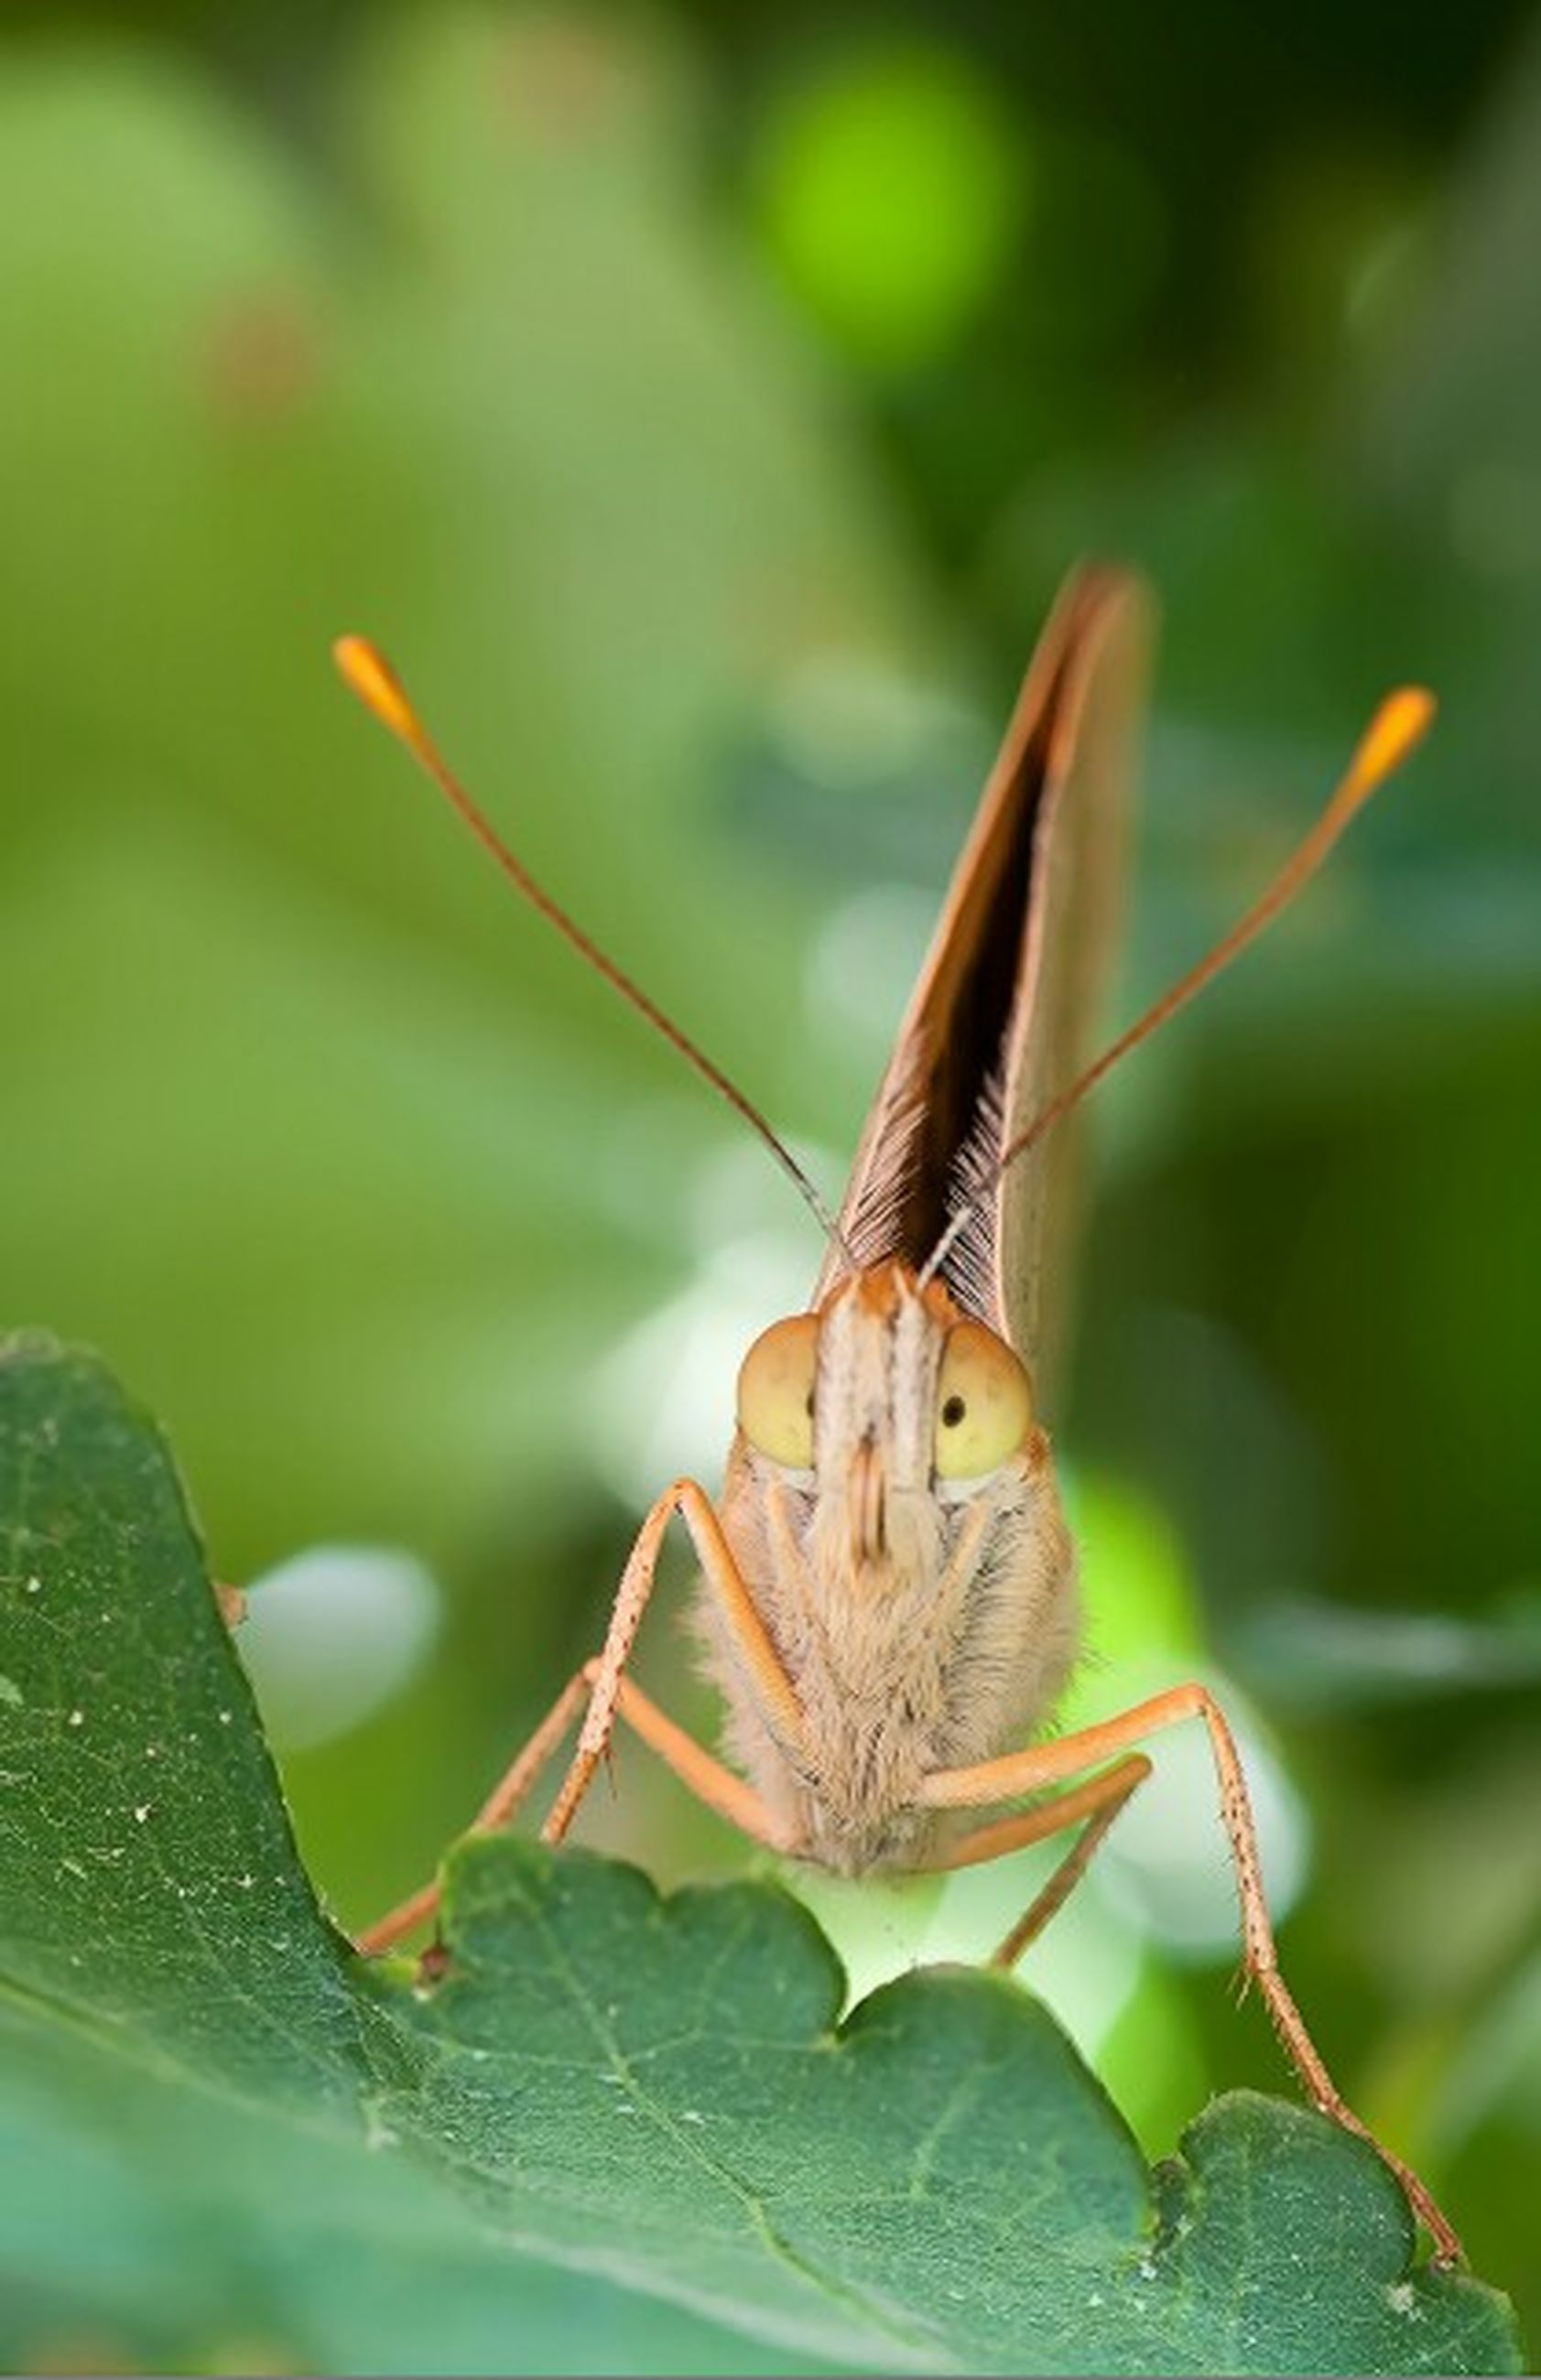 animal themes, one animal, animals in the wild, wildlife, insect, close-up, focus on foreground, leaf, green color, selective focus, plant, nature, zoology, side view, outdoors, day, beauty in nature, no people, full length, butterfly